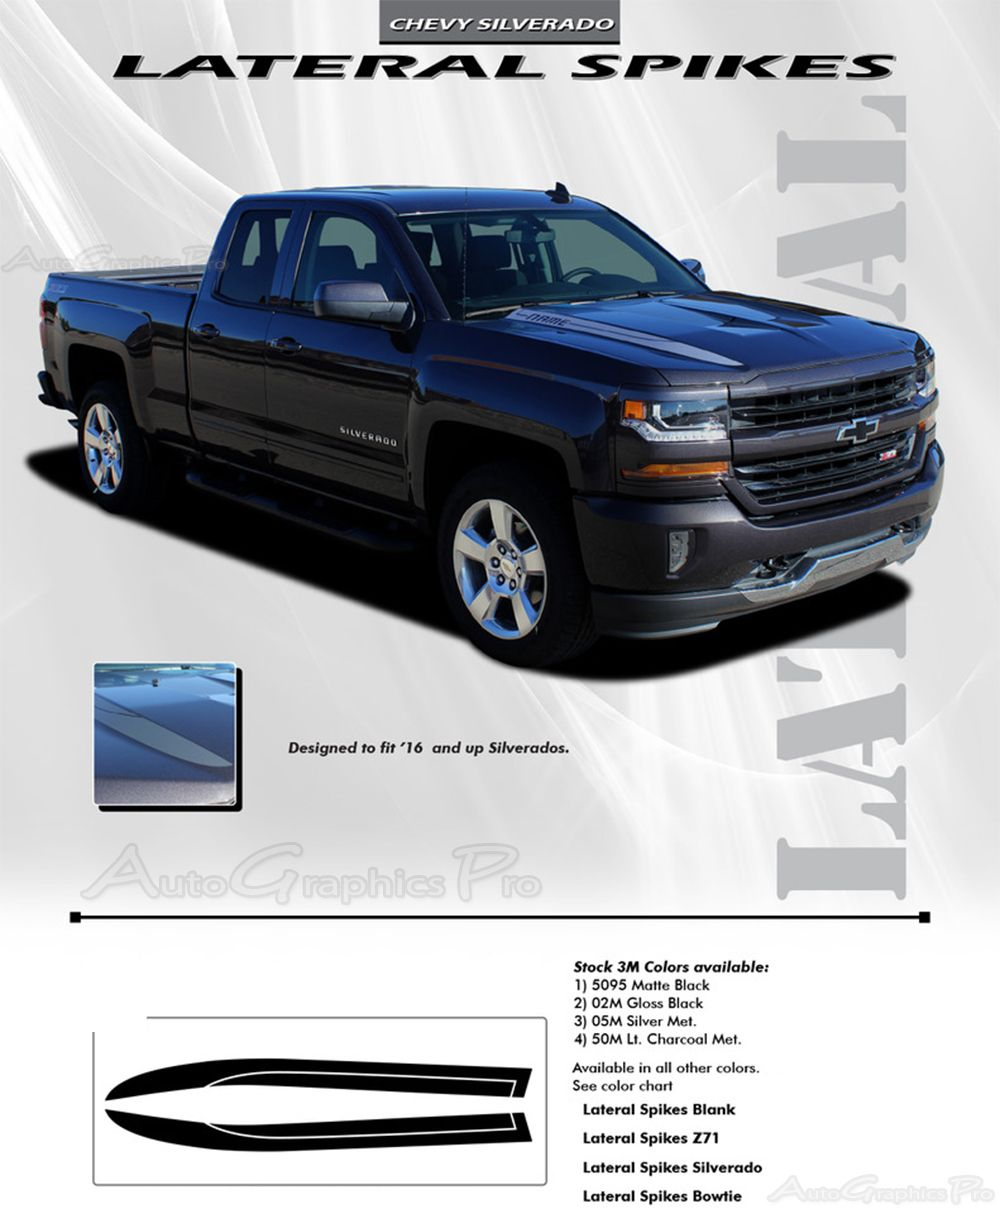 Chevy Silverado LATERAL SPIKES Double Hood Spear Hood - Decals for trucks customizedcustom graphics decals honda chevy ford gmc mitsubishi